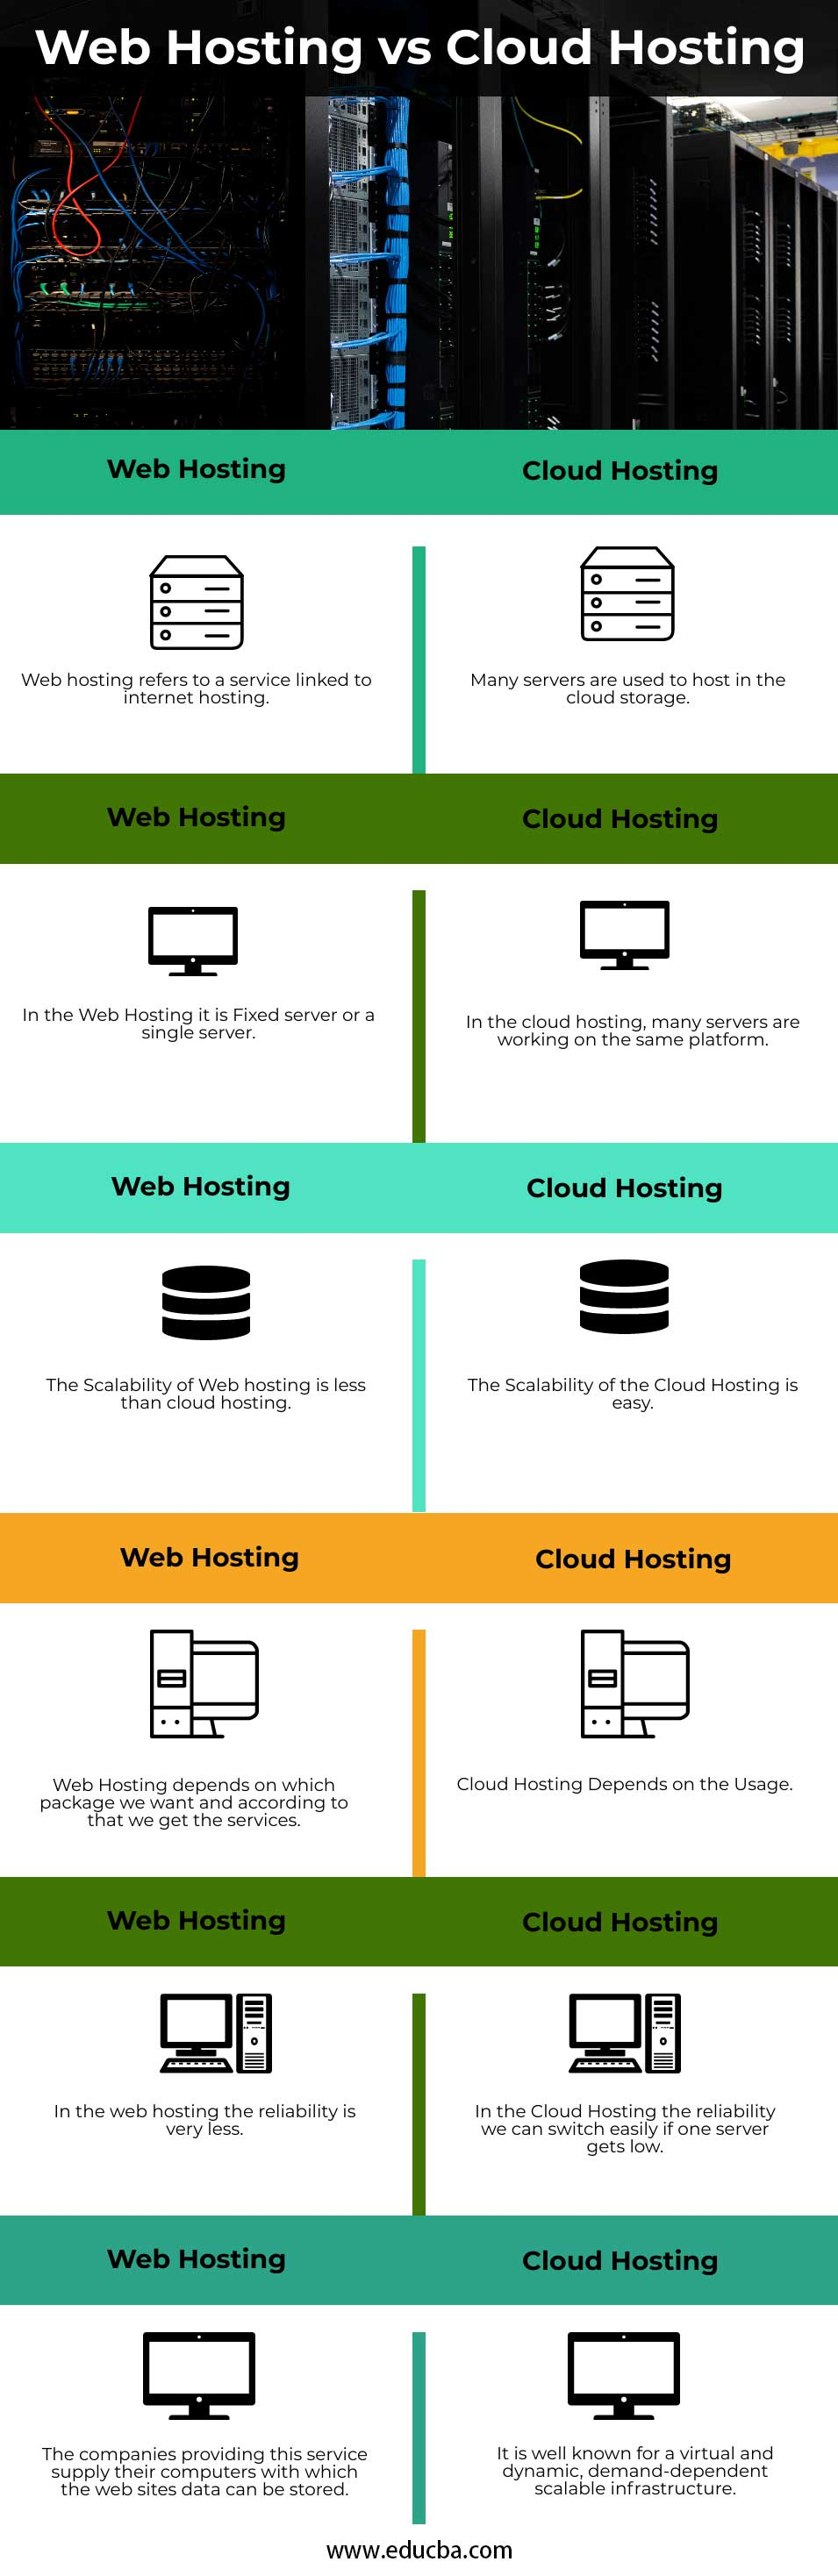 Web-Hosting-vs-Cloud-Hosting-info